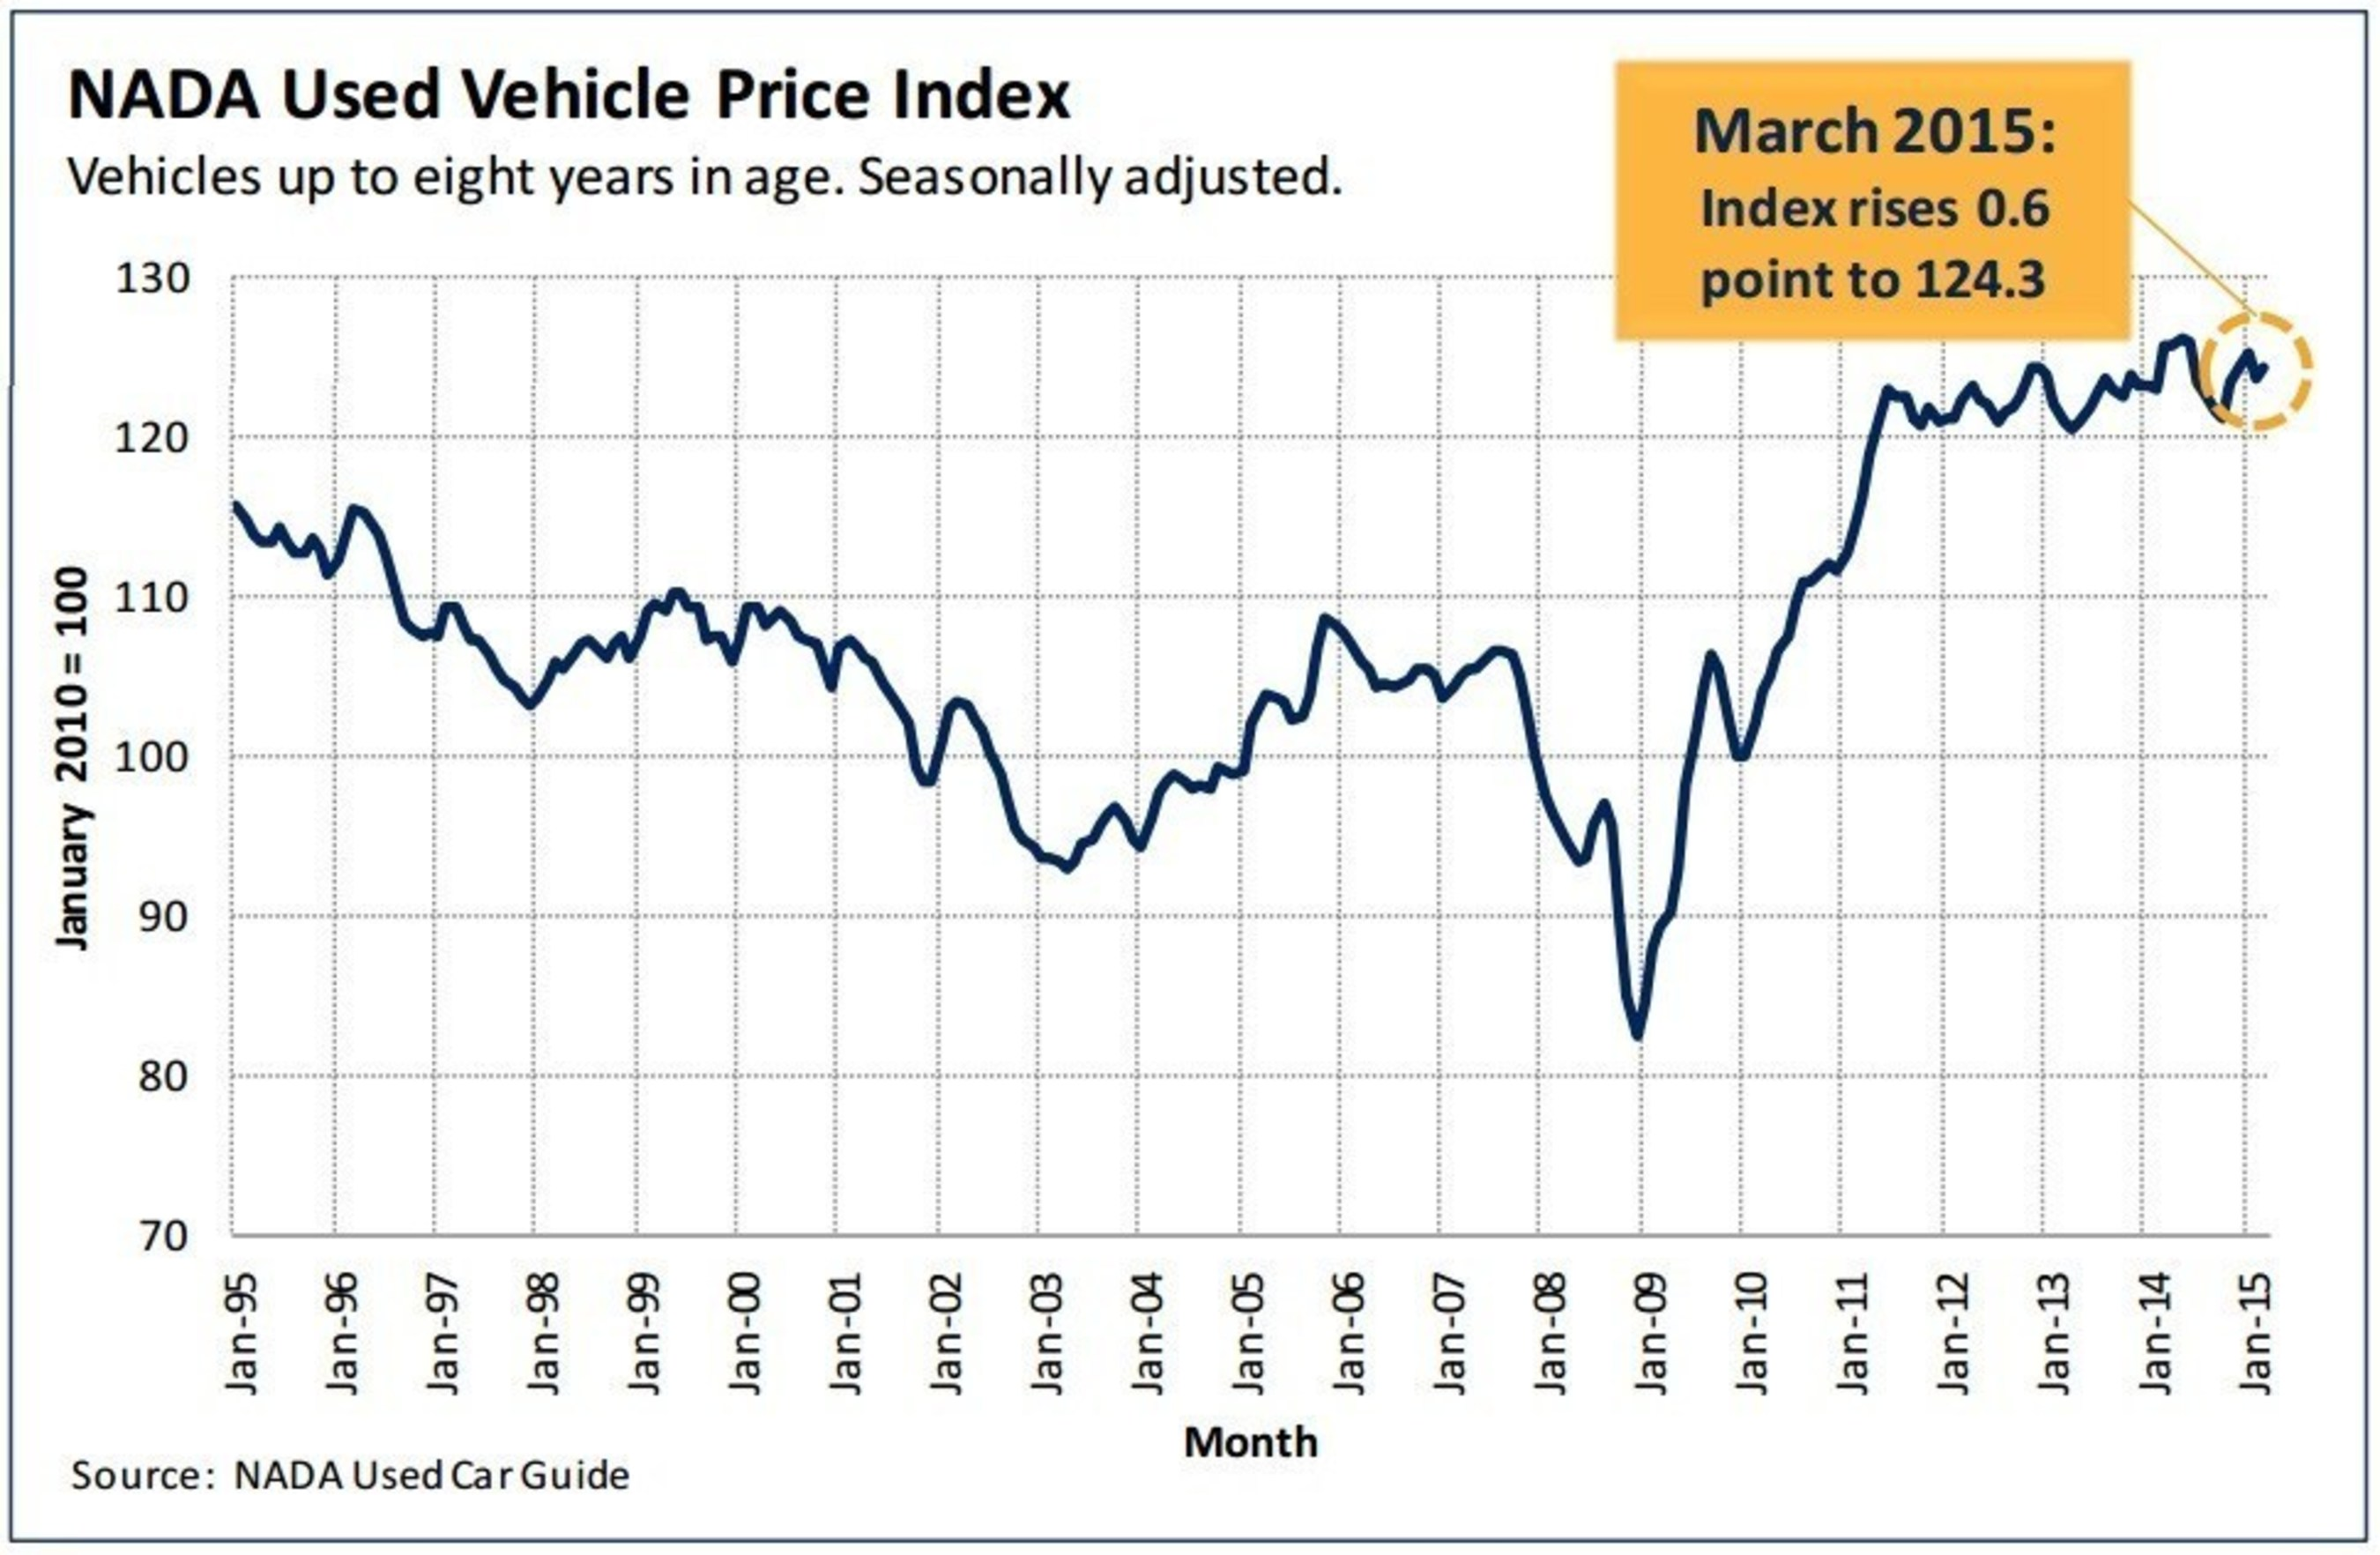 The increase in March prices helped push NADA's Used Vehicle Price Index up from 123.4 in February to 124.3 in March.